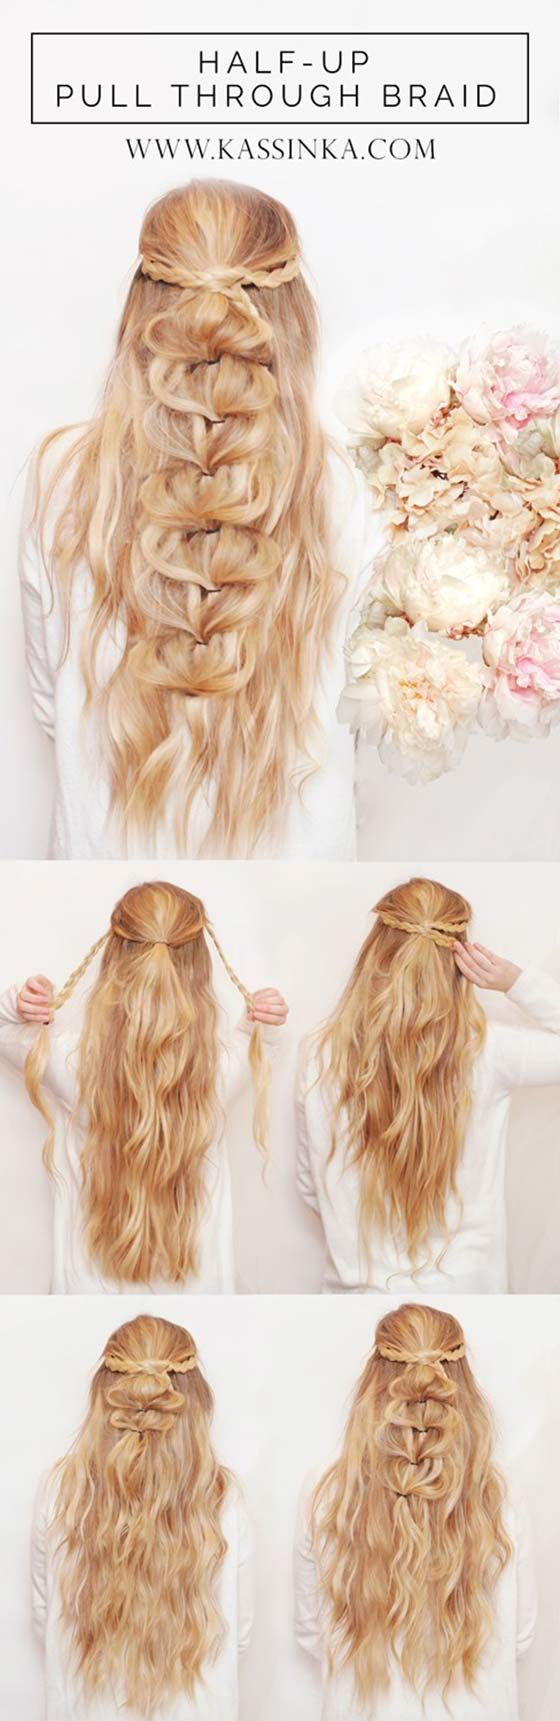 Braided Hairstyles For Long Hair Unique 40 Braided Hairstyles For Long Hair  Plait Hairstyles Simple